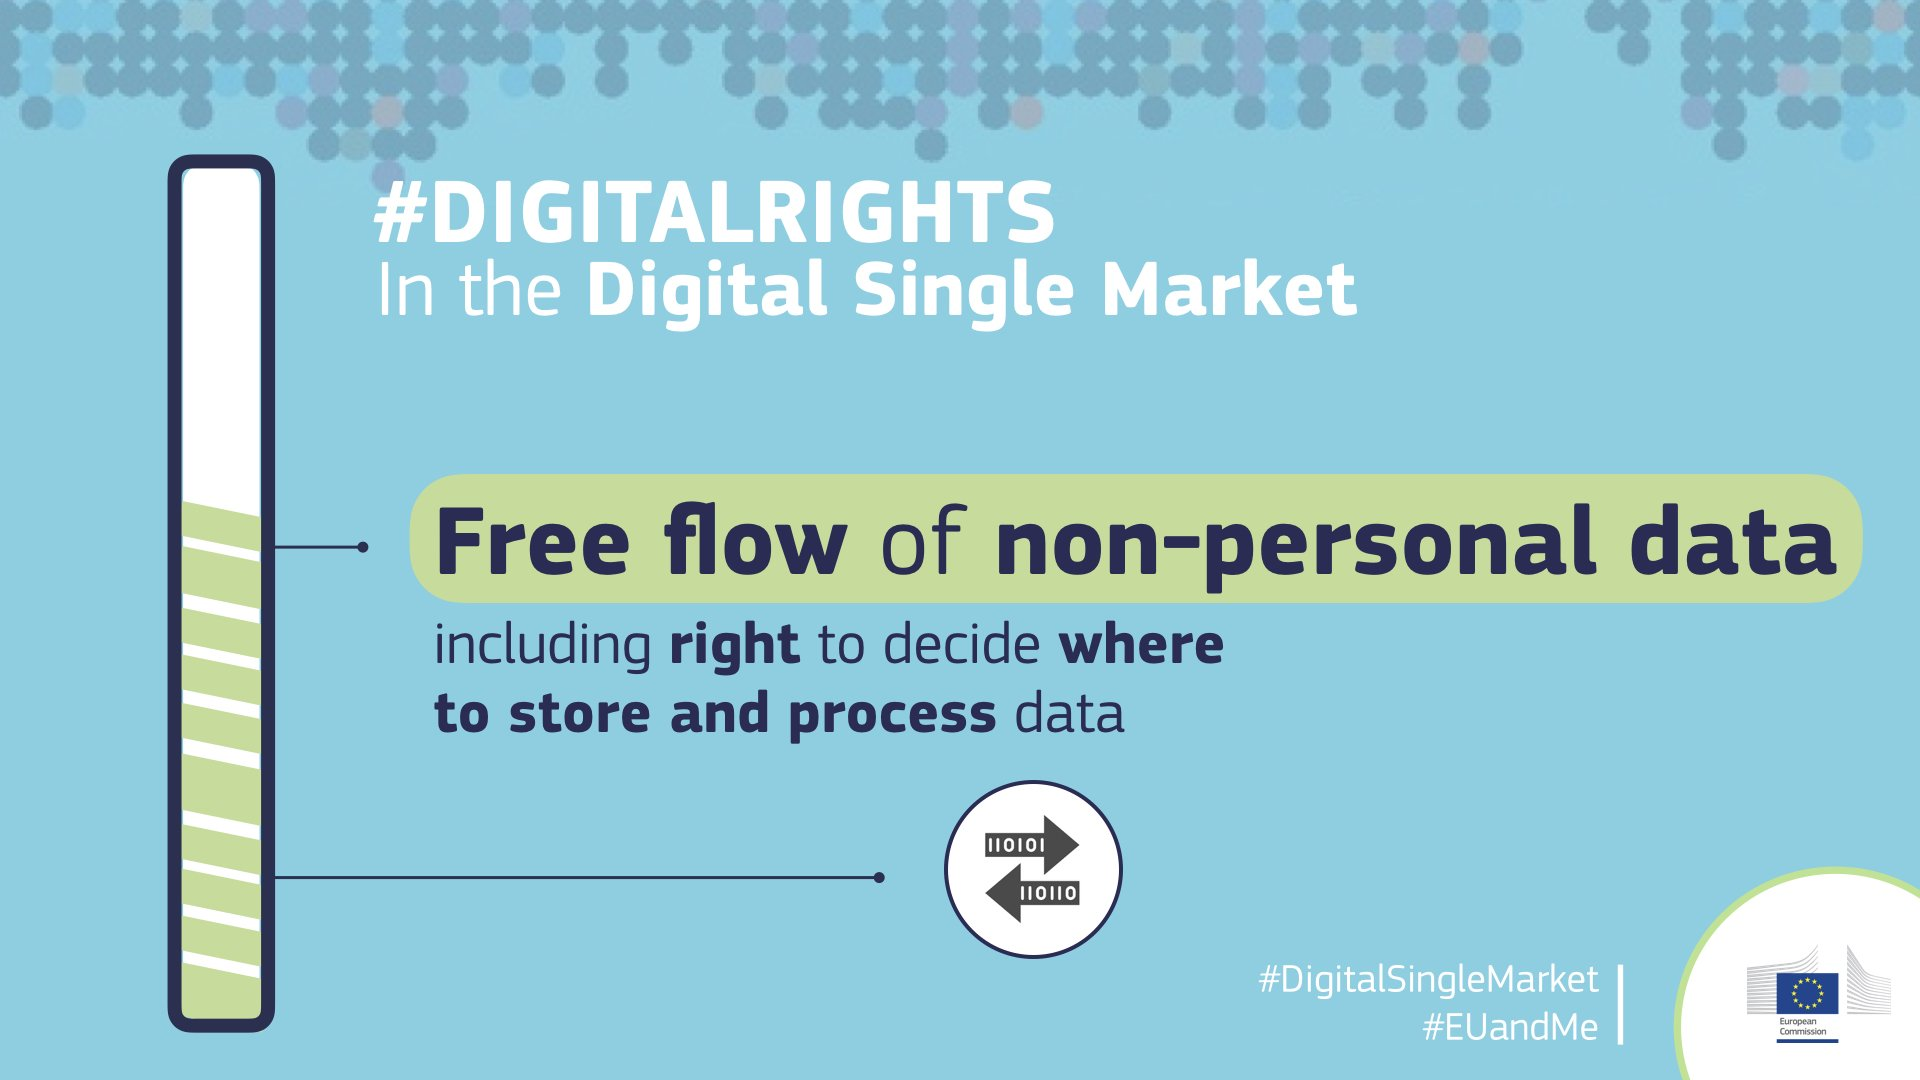 From December 2018 you'll benefit from the free flow of non-personal data #fifthfreedom complementing free movement of people/goods/services/capital. You'll have the right to decide where in the EU you store & process all types of data #freeflowofdata #digitalrights #AI #EUandMe https://t.co/wr9NJQBxPY